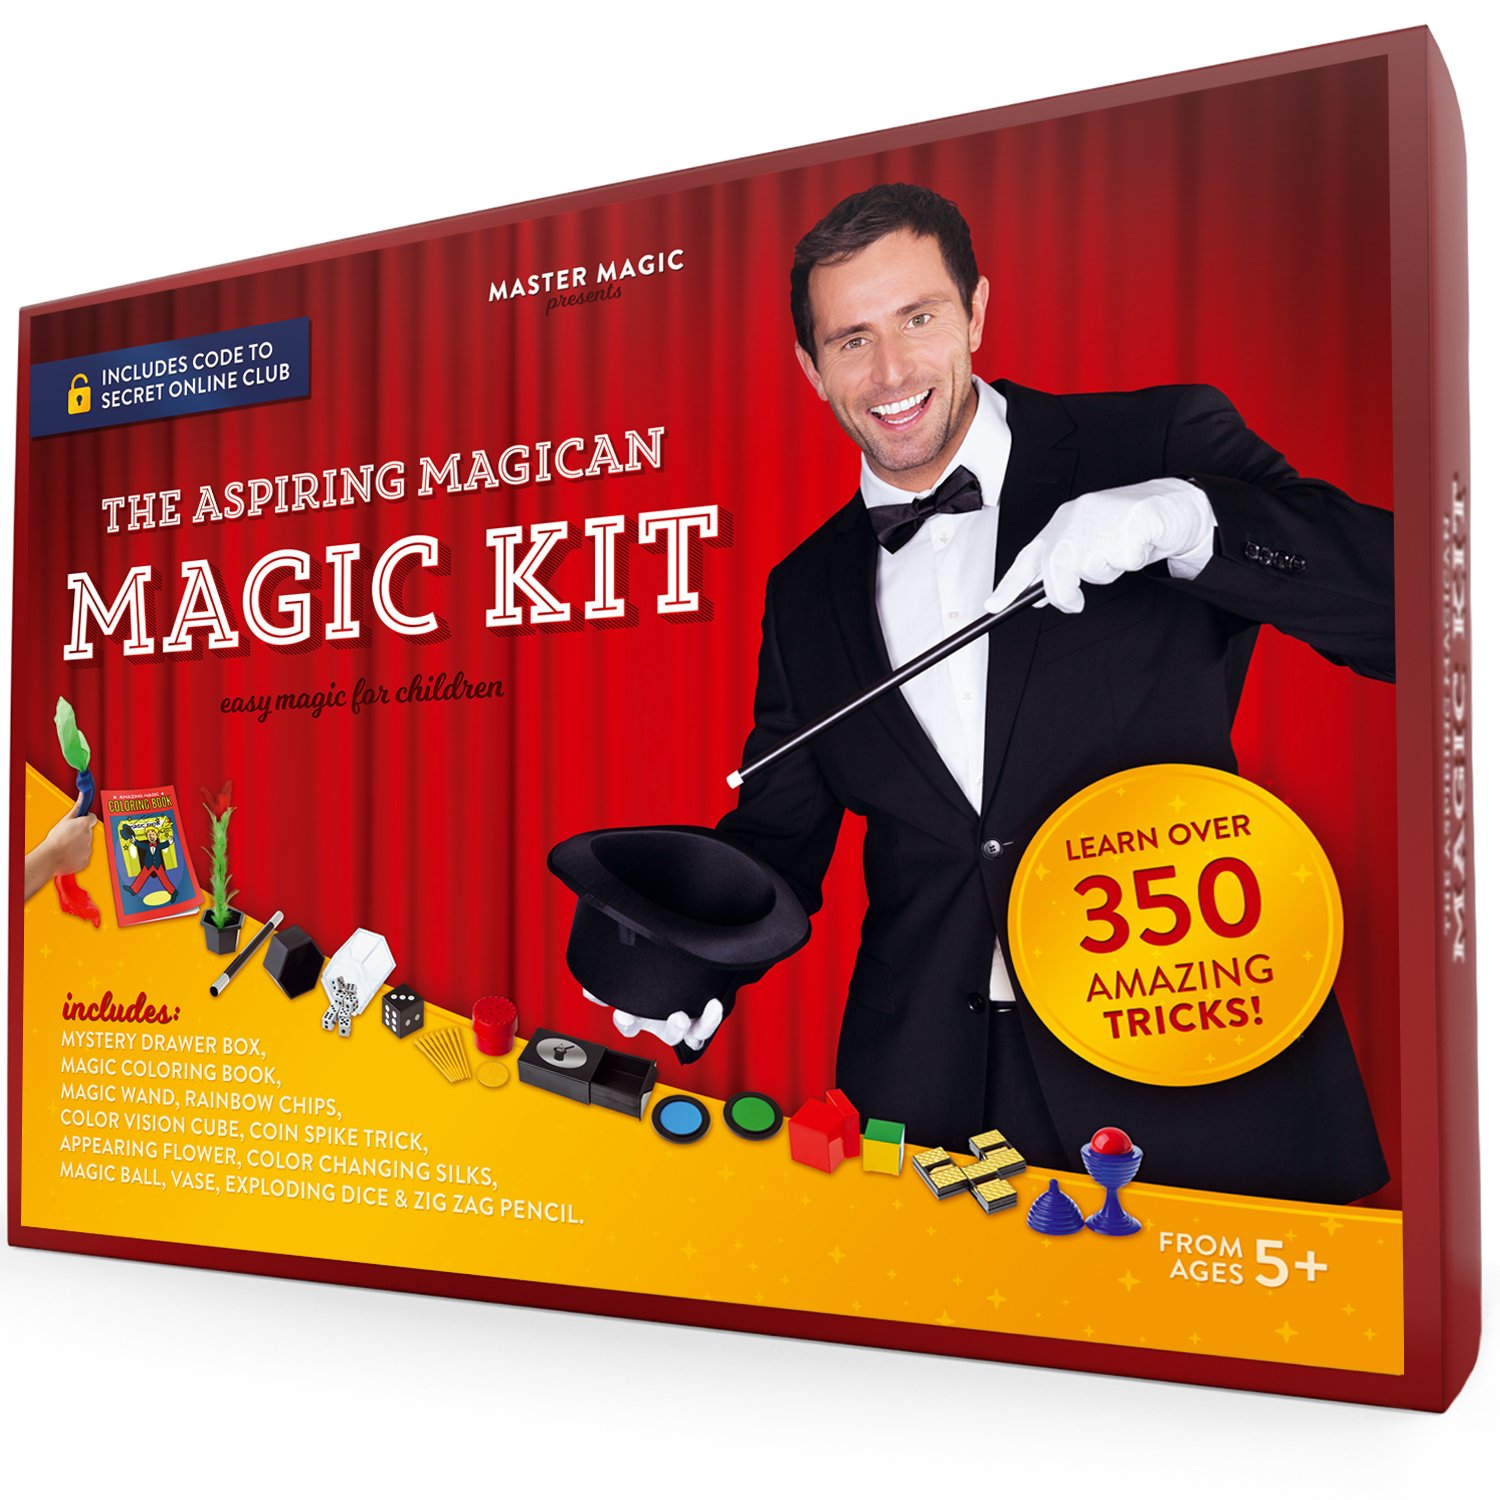 MasterMagic Magic Kit - Easy Magic Tricks For Children - Learn Over 350 Spectacular Tricks With This Magic Set - Ideal For Beginners and Kids of All Ages! by MAGIC MASTER